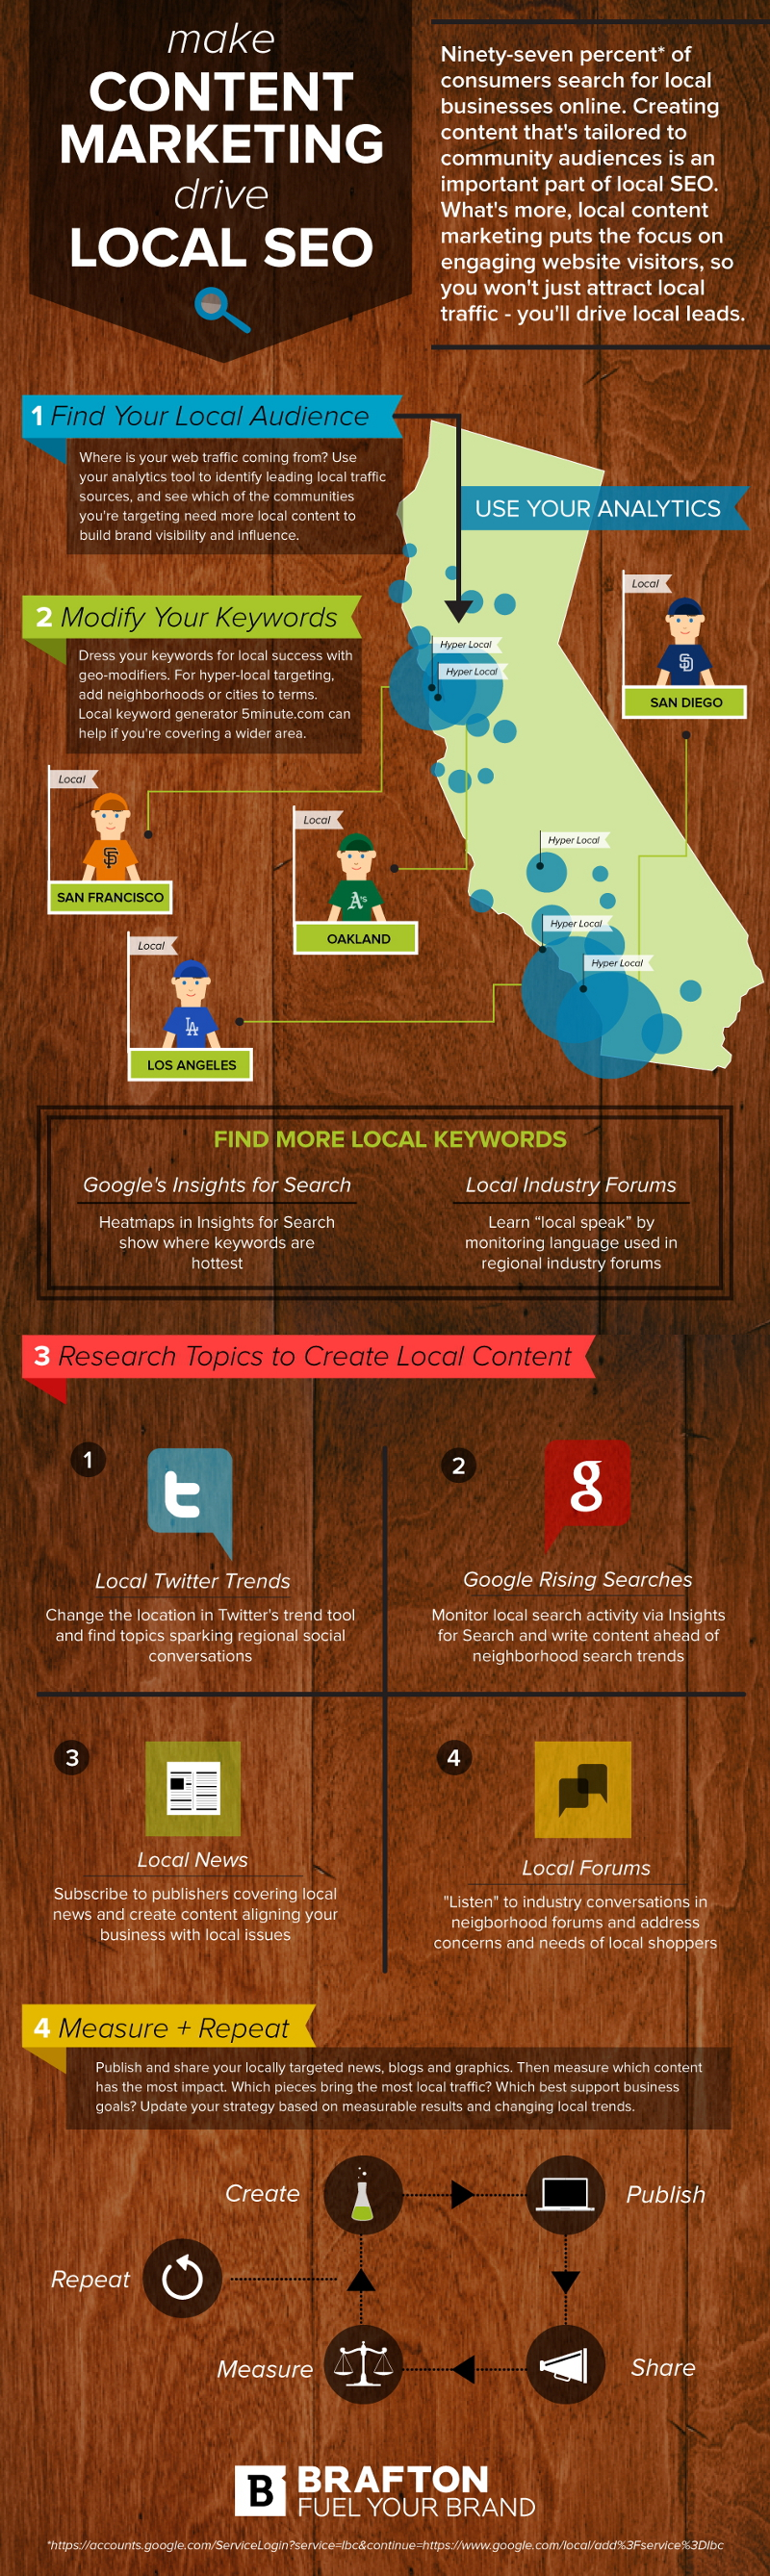 Local SEO and Content Marketing